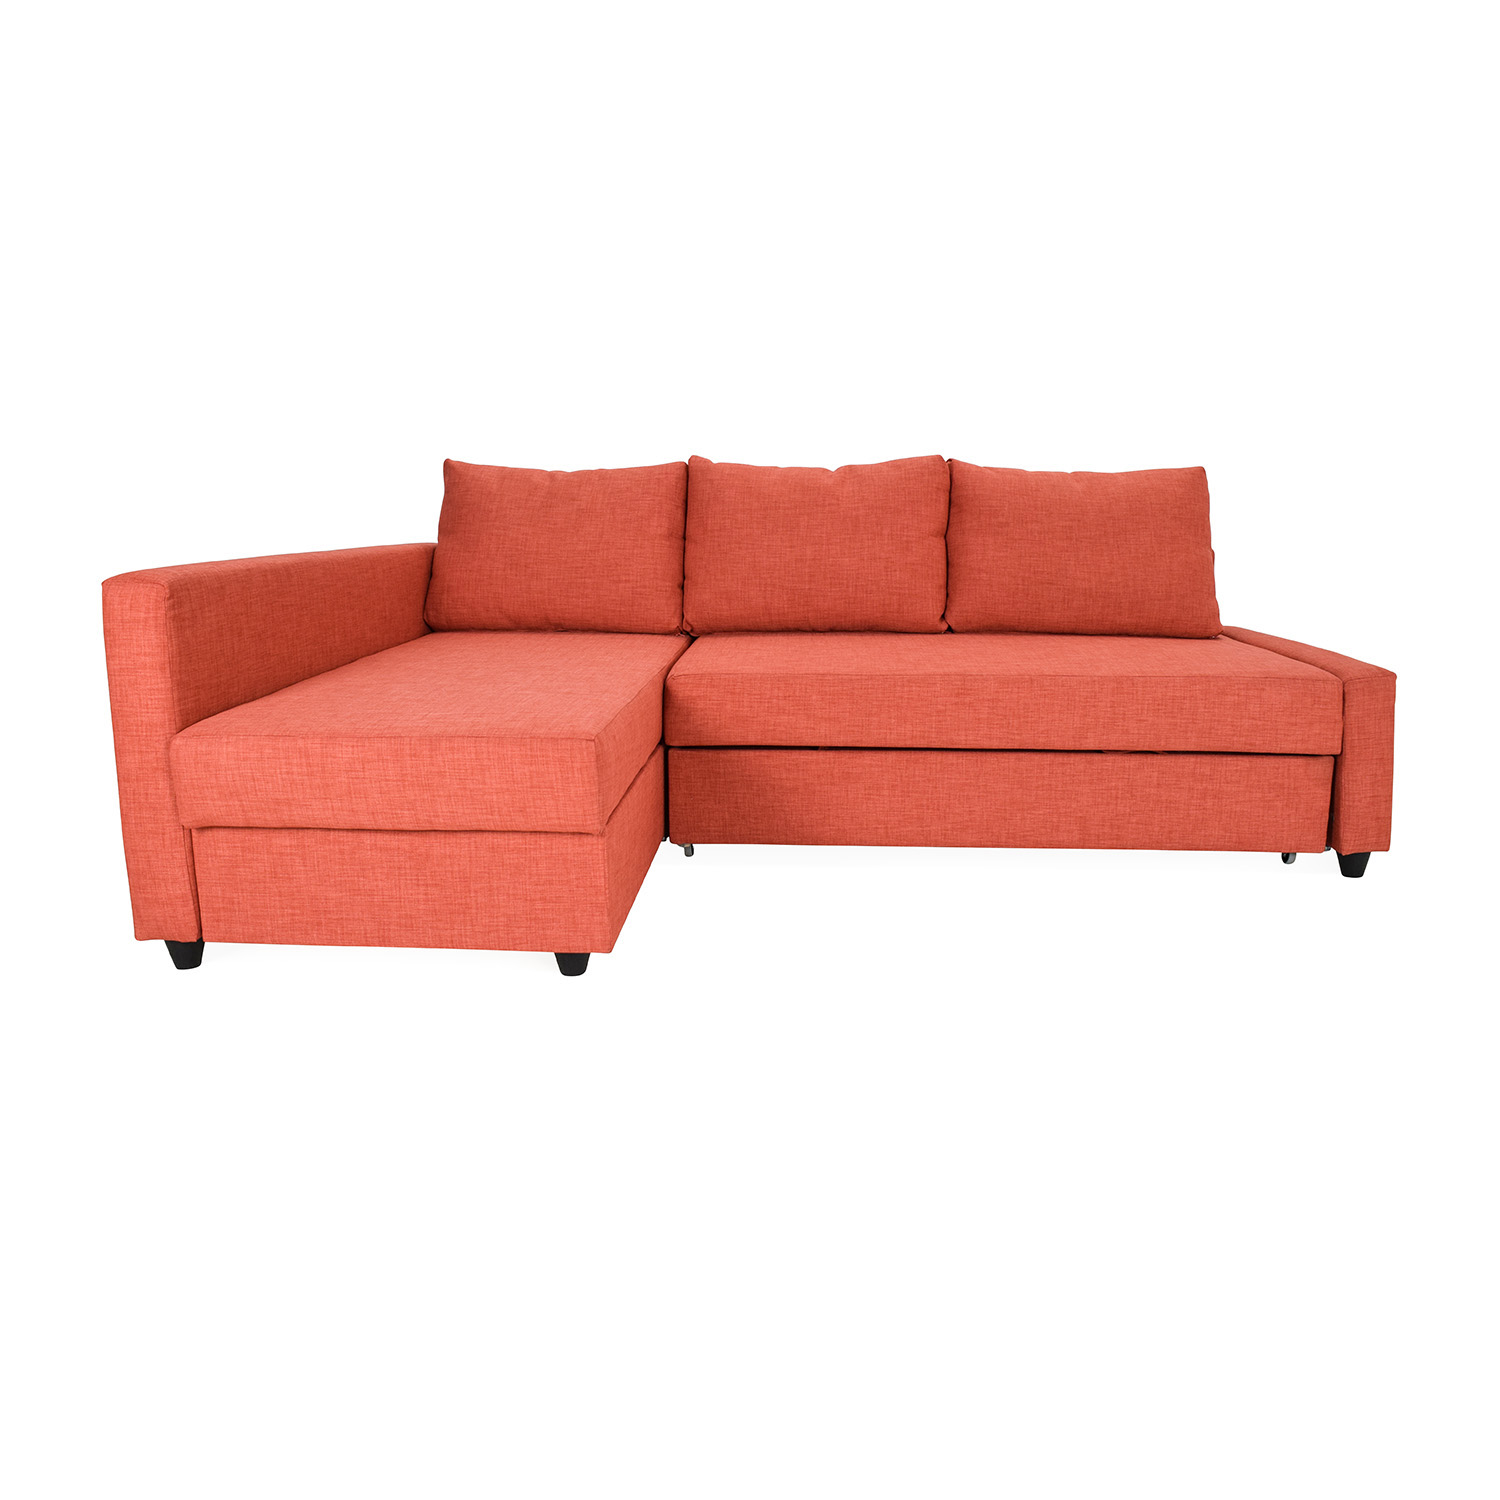 Ikea Chaise Sofa Bed